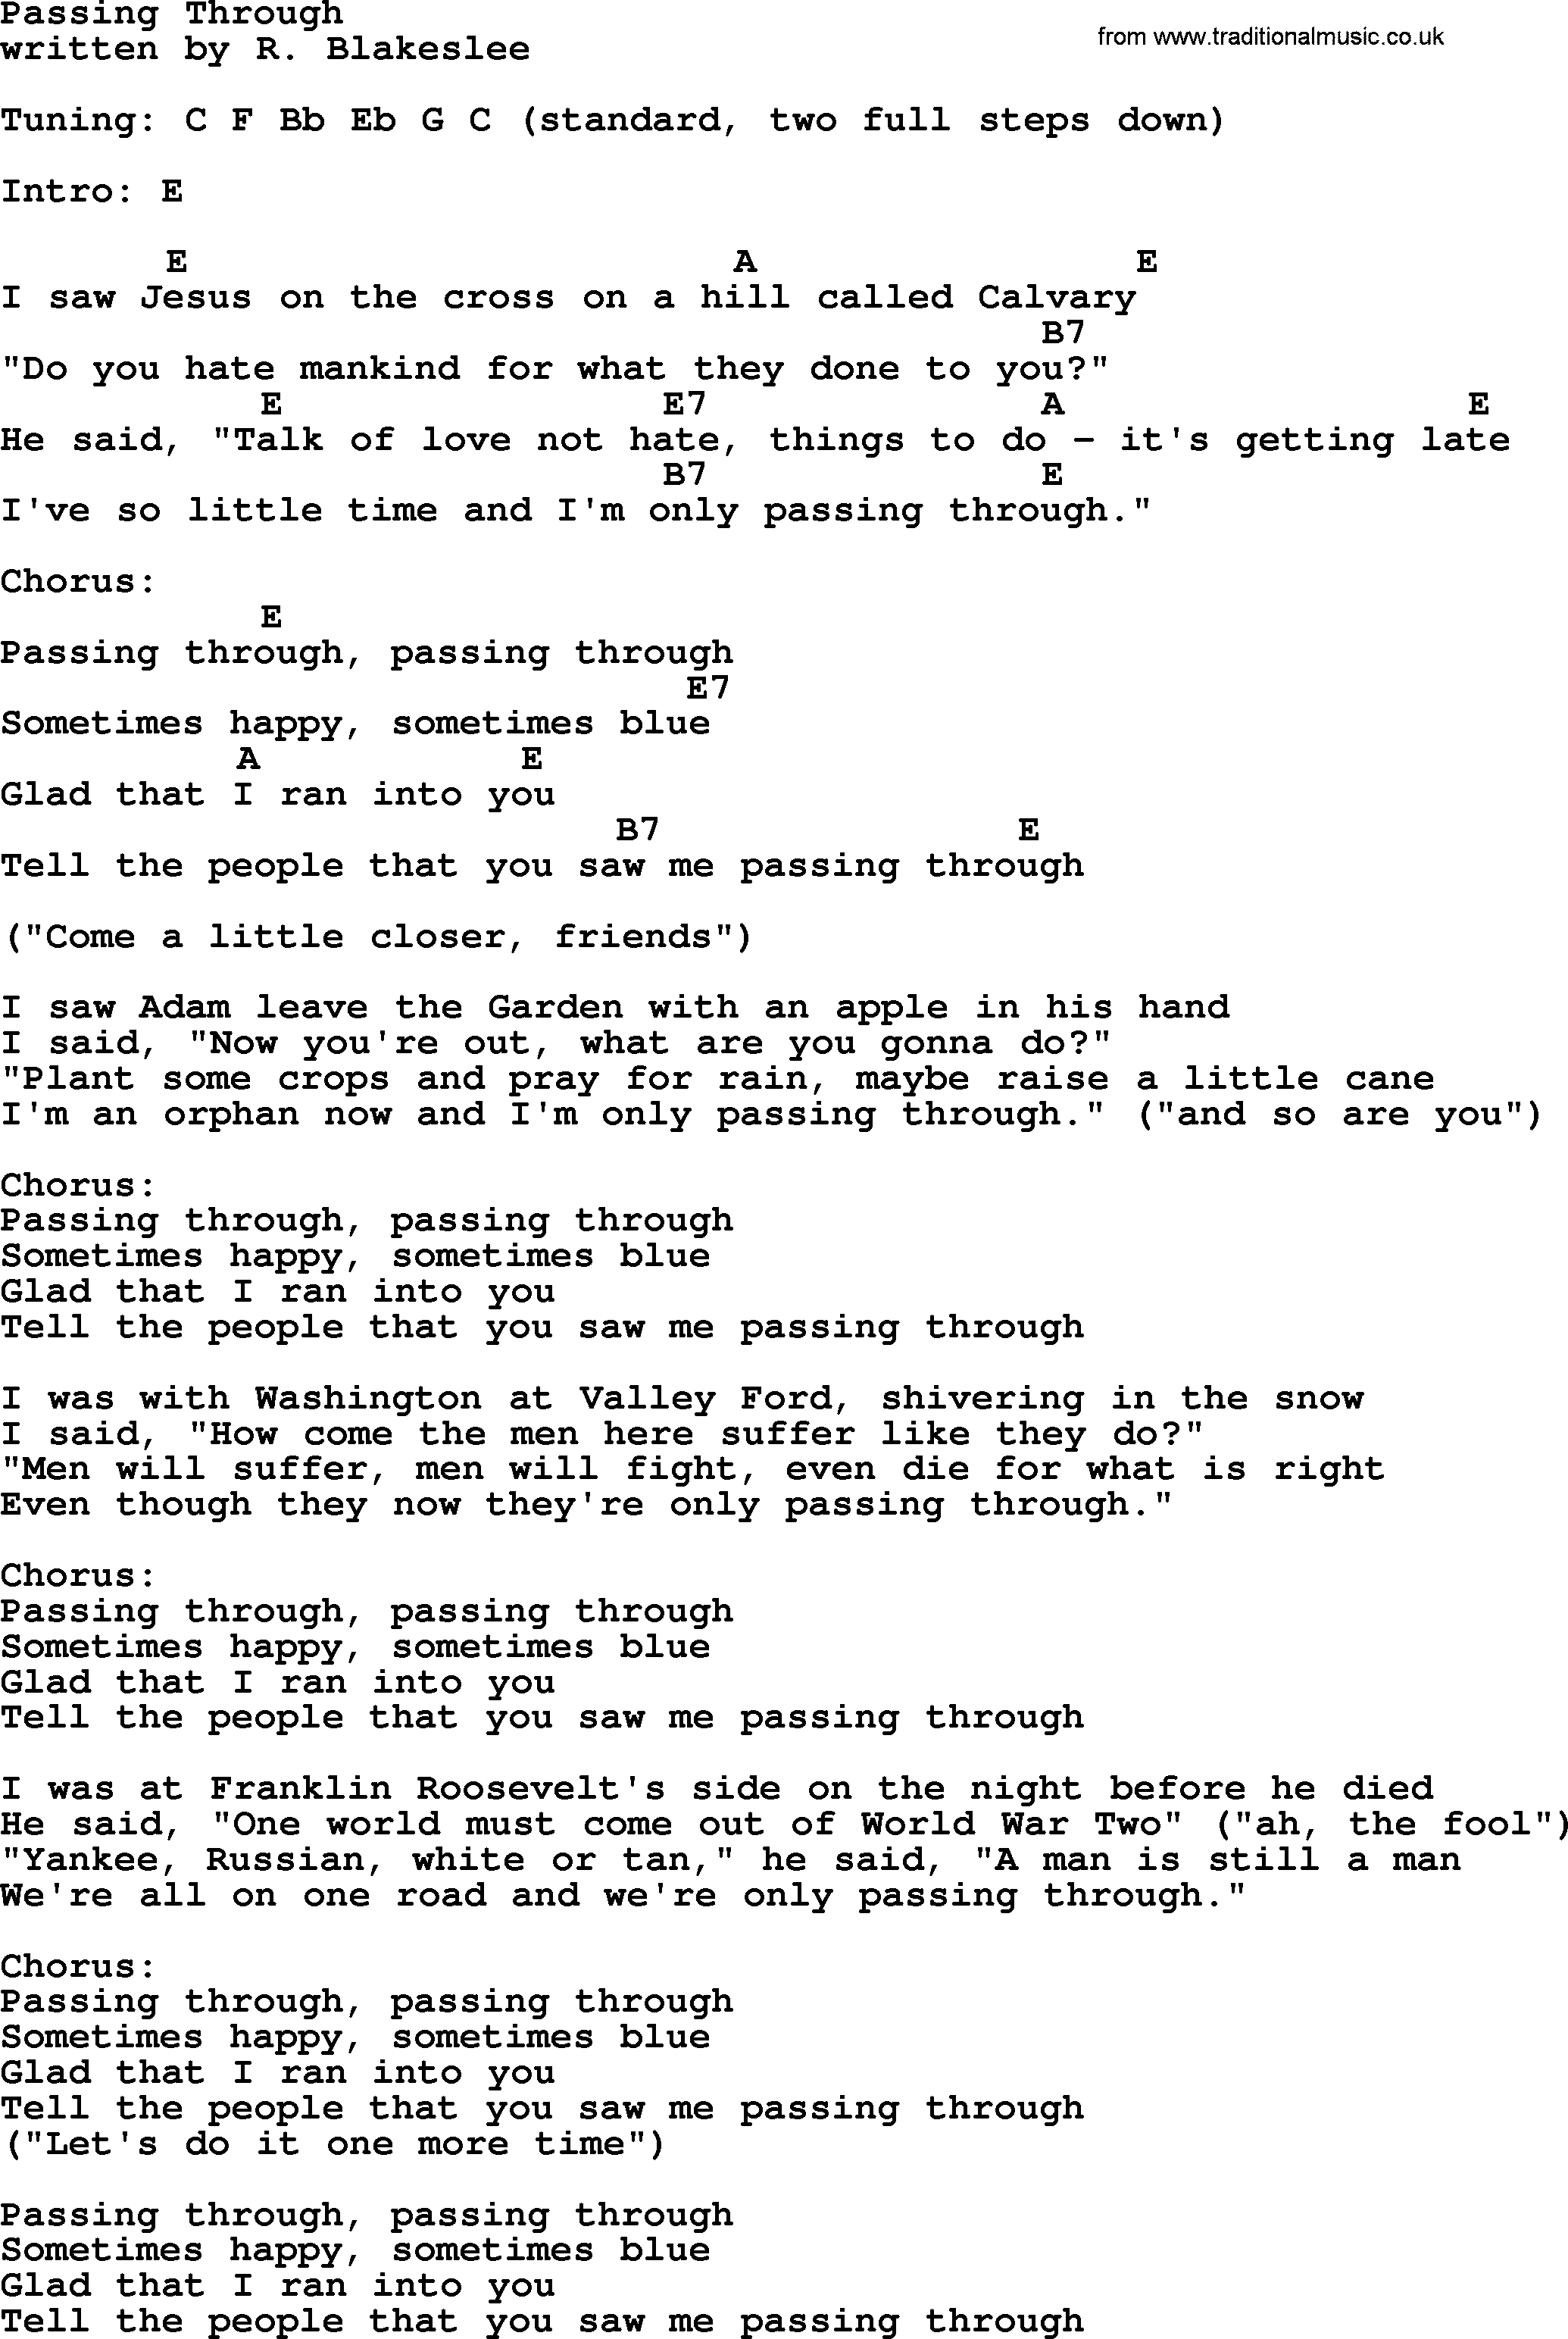 Leonard cohen song passing through lyrics and chords leonard cohen song passing through lyrics and chords hexwebz Image collections